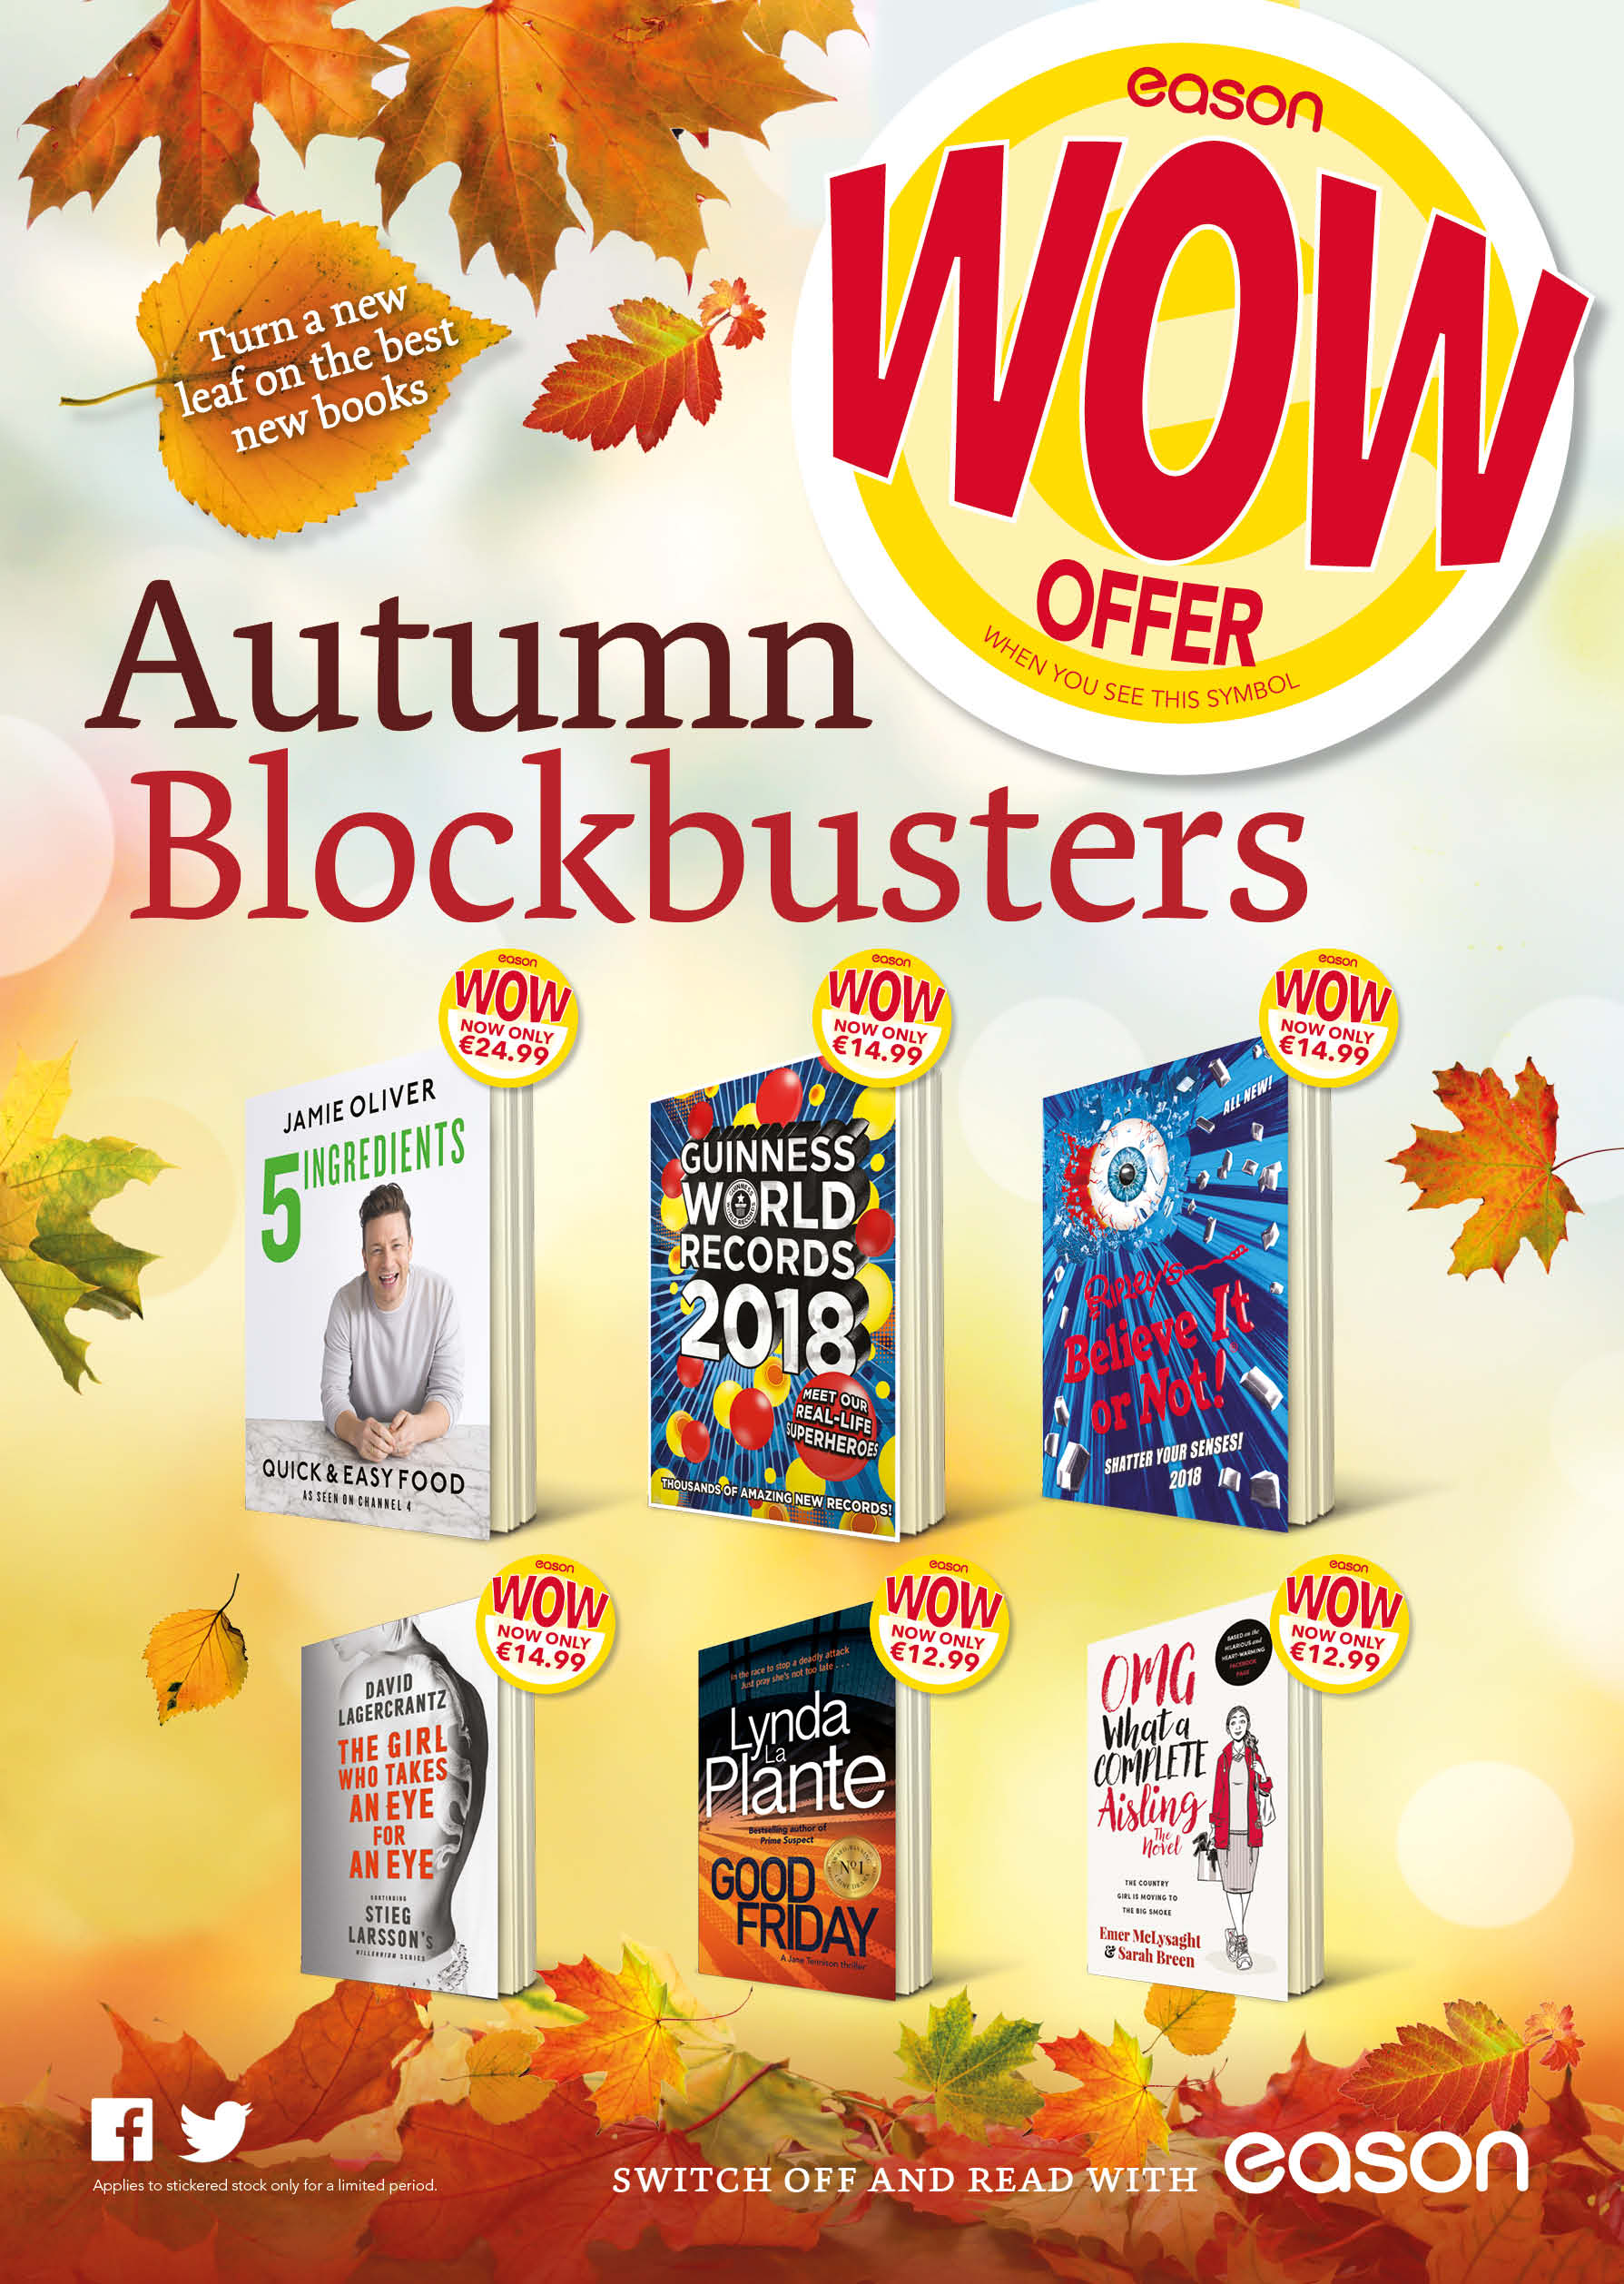 Autumn promotion at Easons!